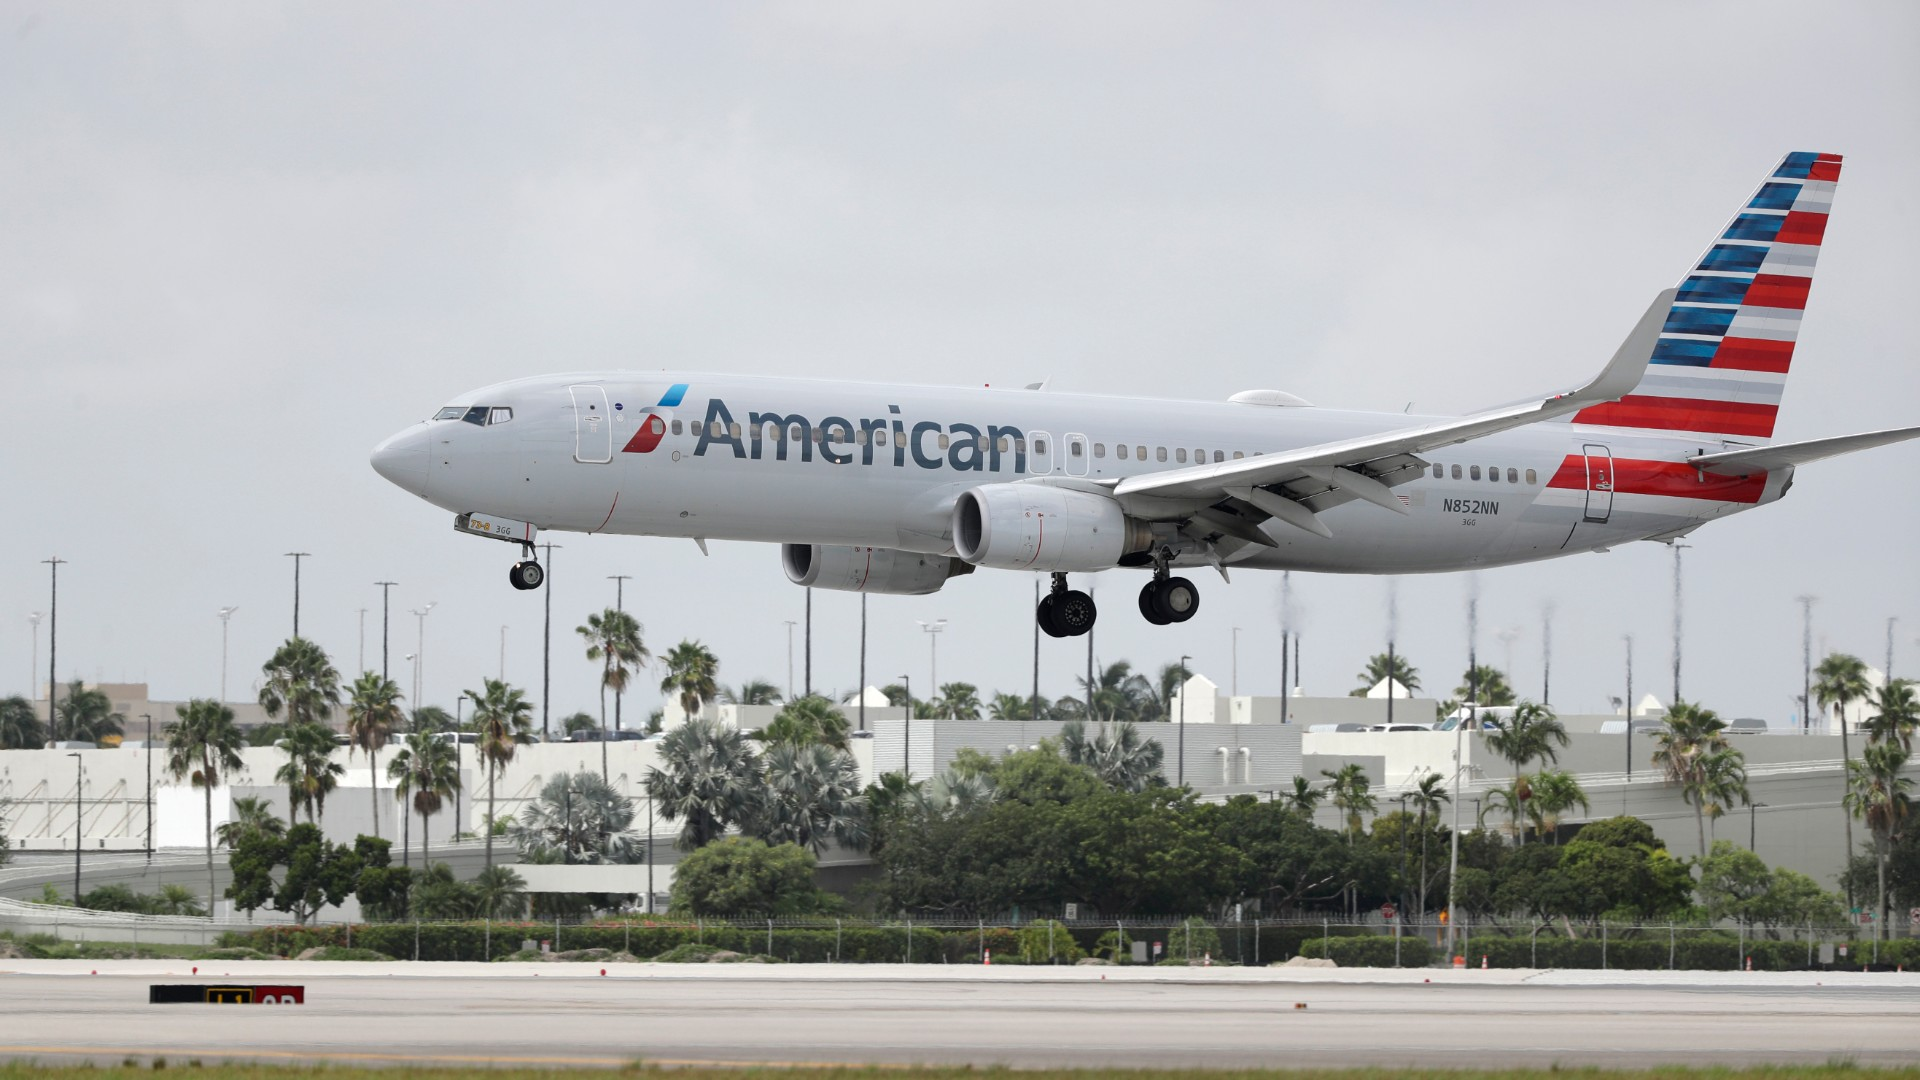 An American Airlines Boeing 737-823 lands at Miami International Airport, Monday, July 27, 2020, in Miami.American Airlines said Tuesday, Aug. 25 that it will furlough or lay off 19,000 employees in October as it struggles with a sharp downturn in travel because of the pandemic. Flight attendants will bear the heaviest cuts, with 8,100 losing their jobs. (AP Photo/Wilfredo Lee, File)